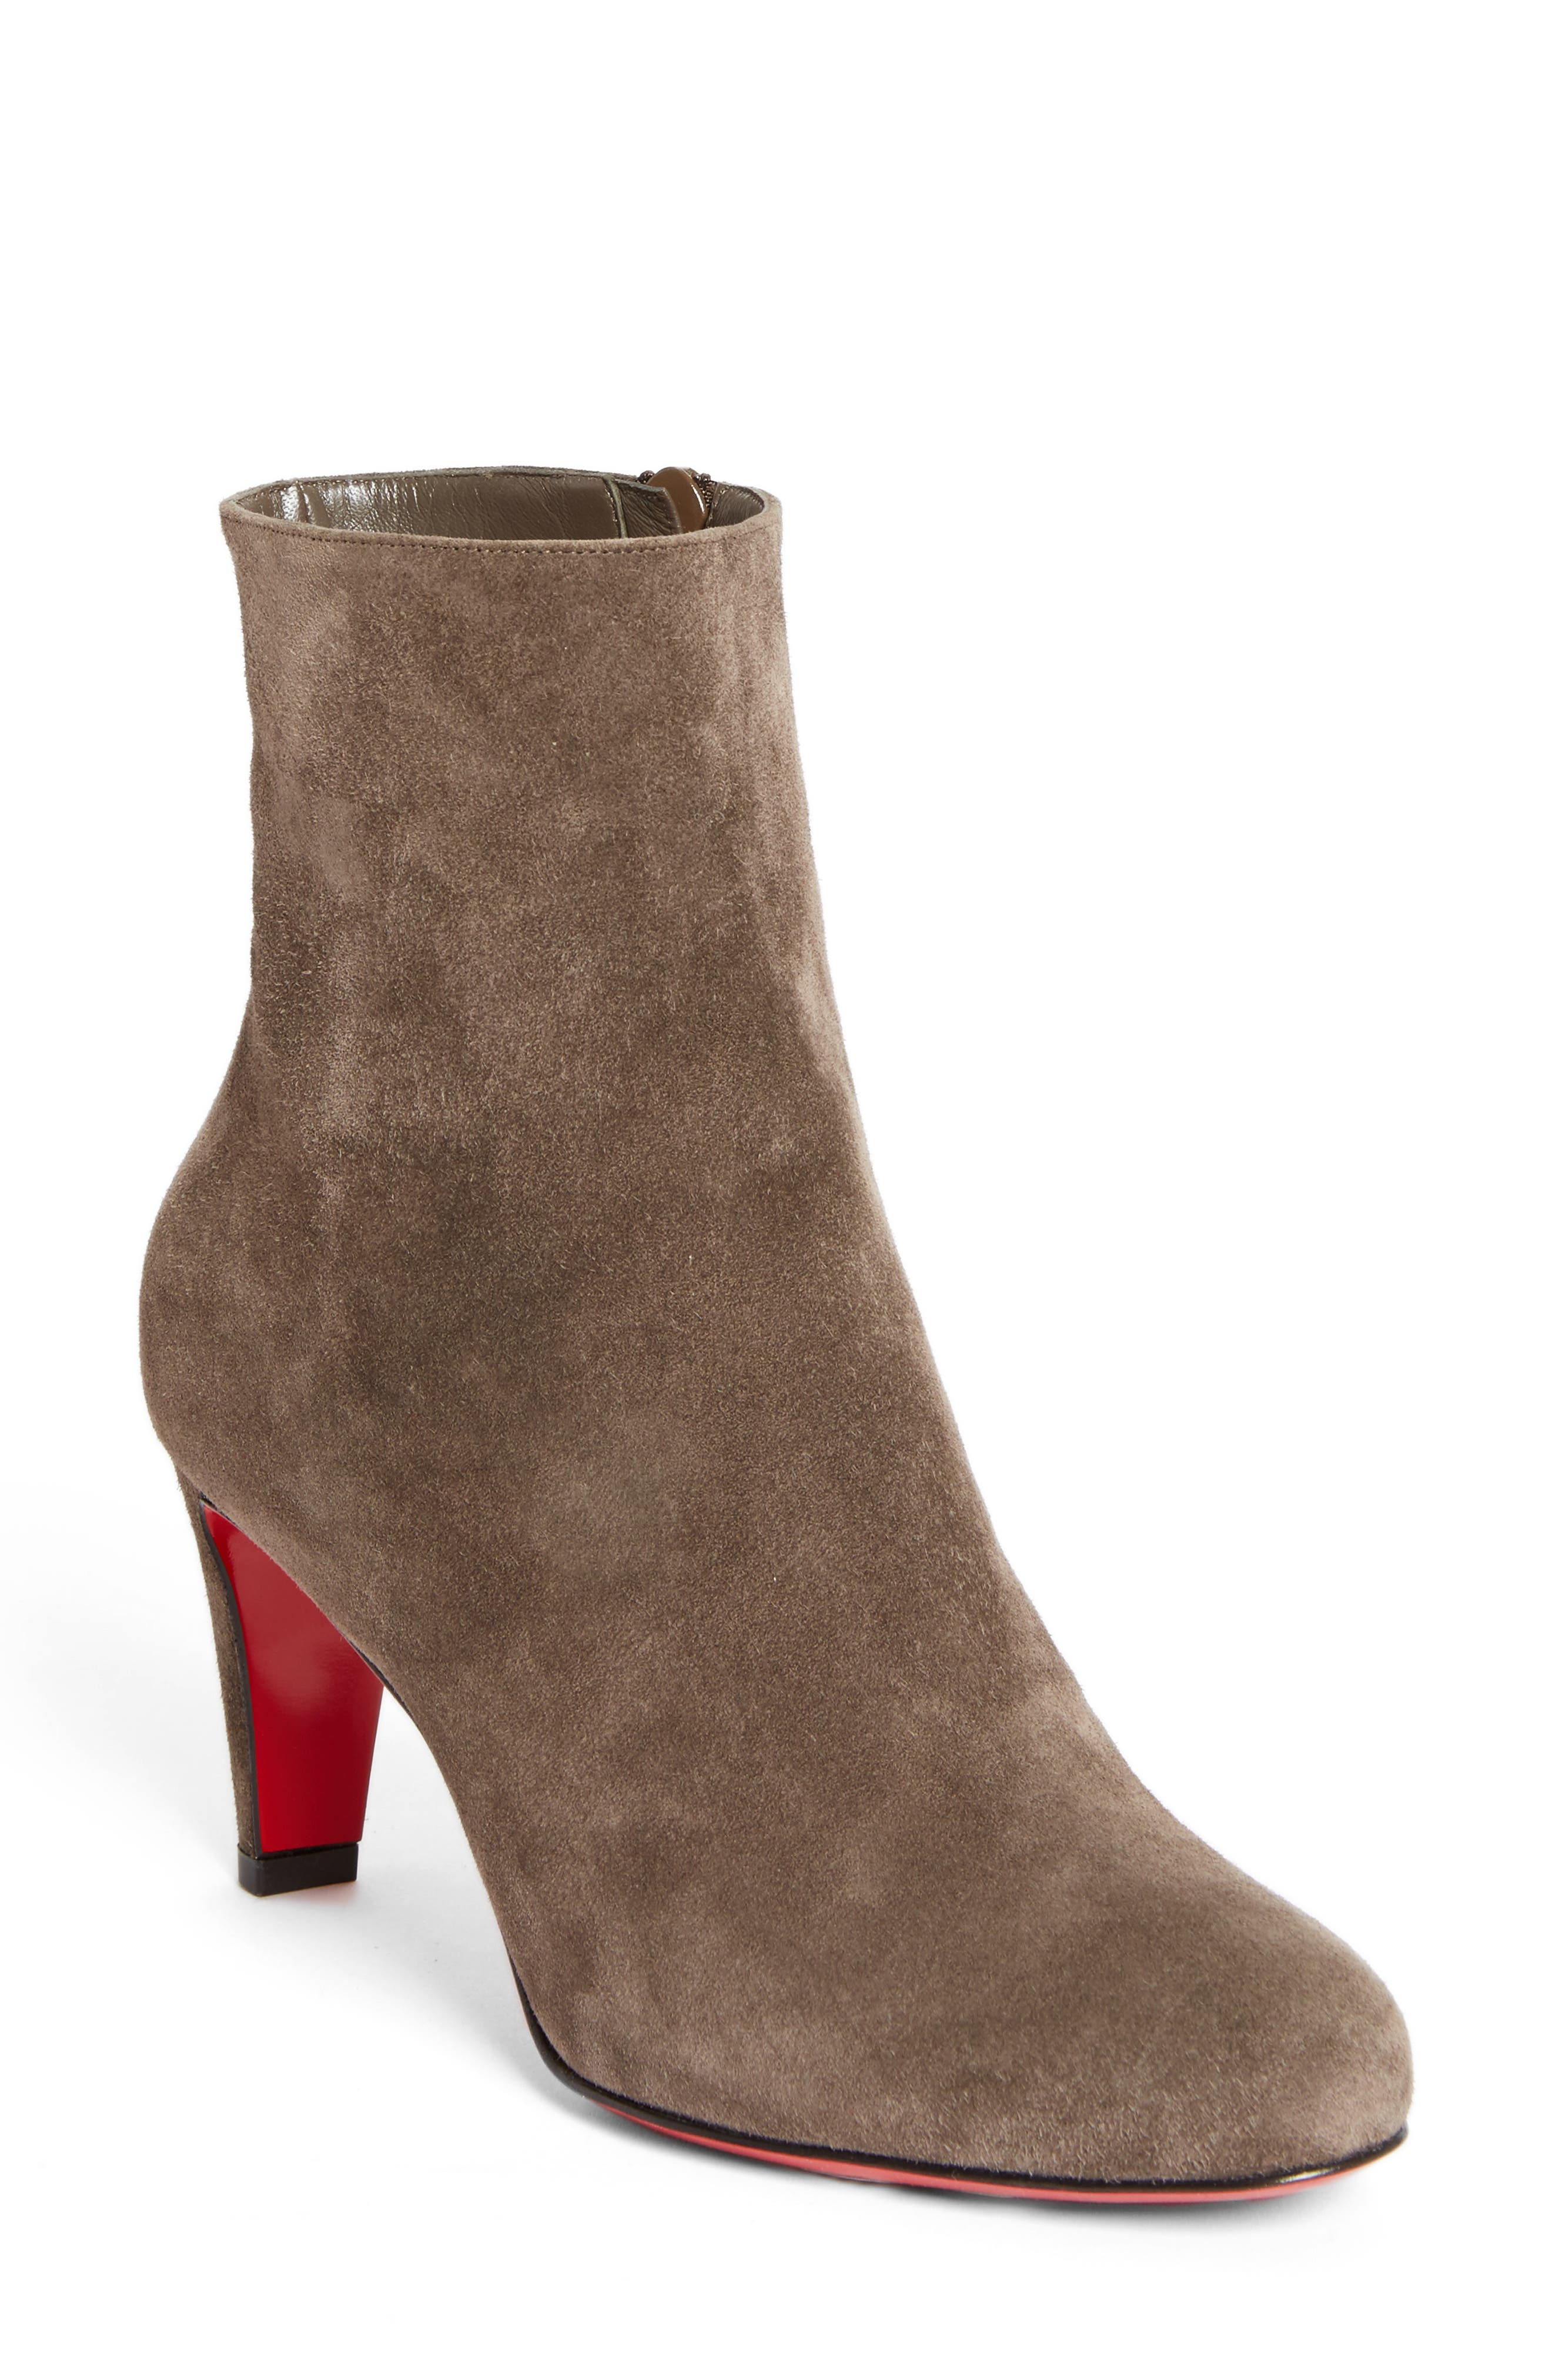 Main Image - Christian Louboutin 'Top' Ankle Bootie